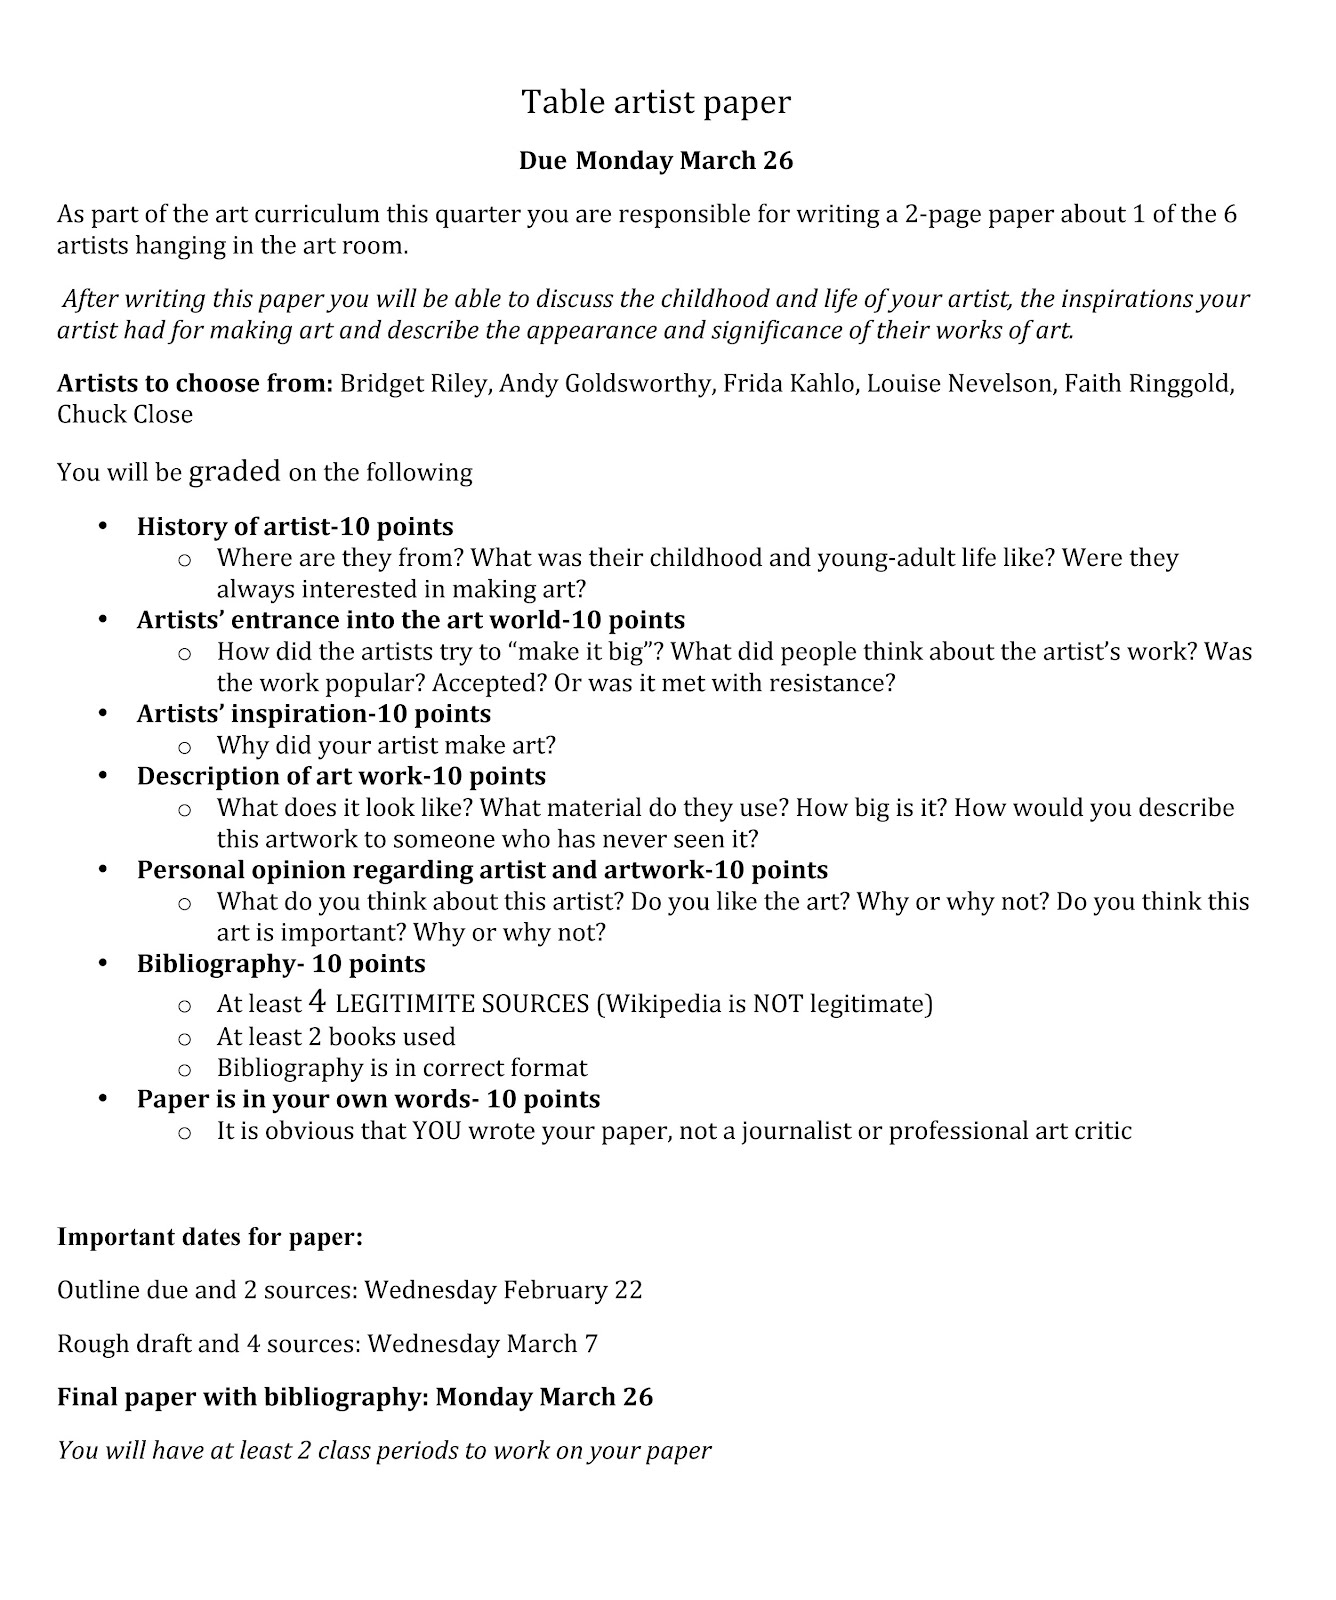 014 Research Paper Good Topics For College English Dreaded Class Full